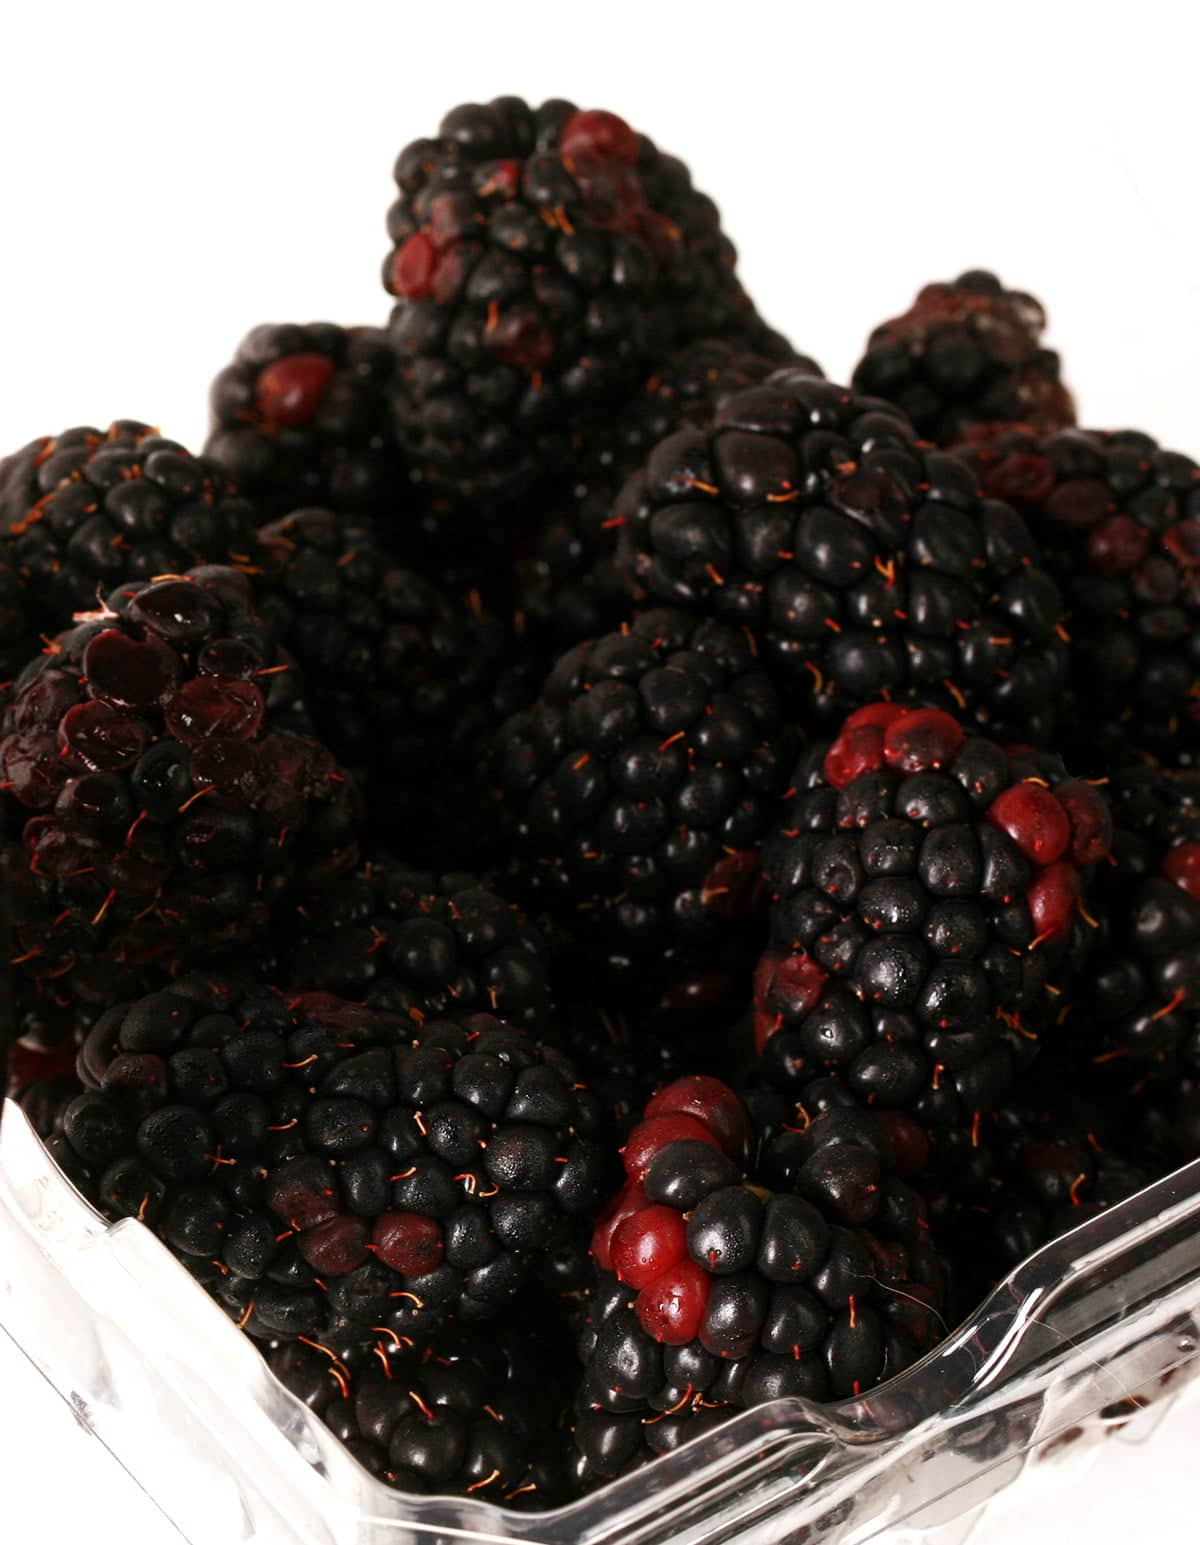 A tray of fresh blackberries in front of a white background.